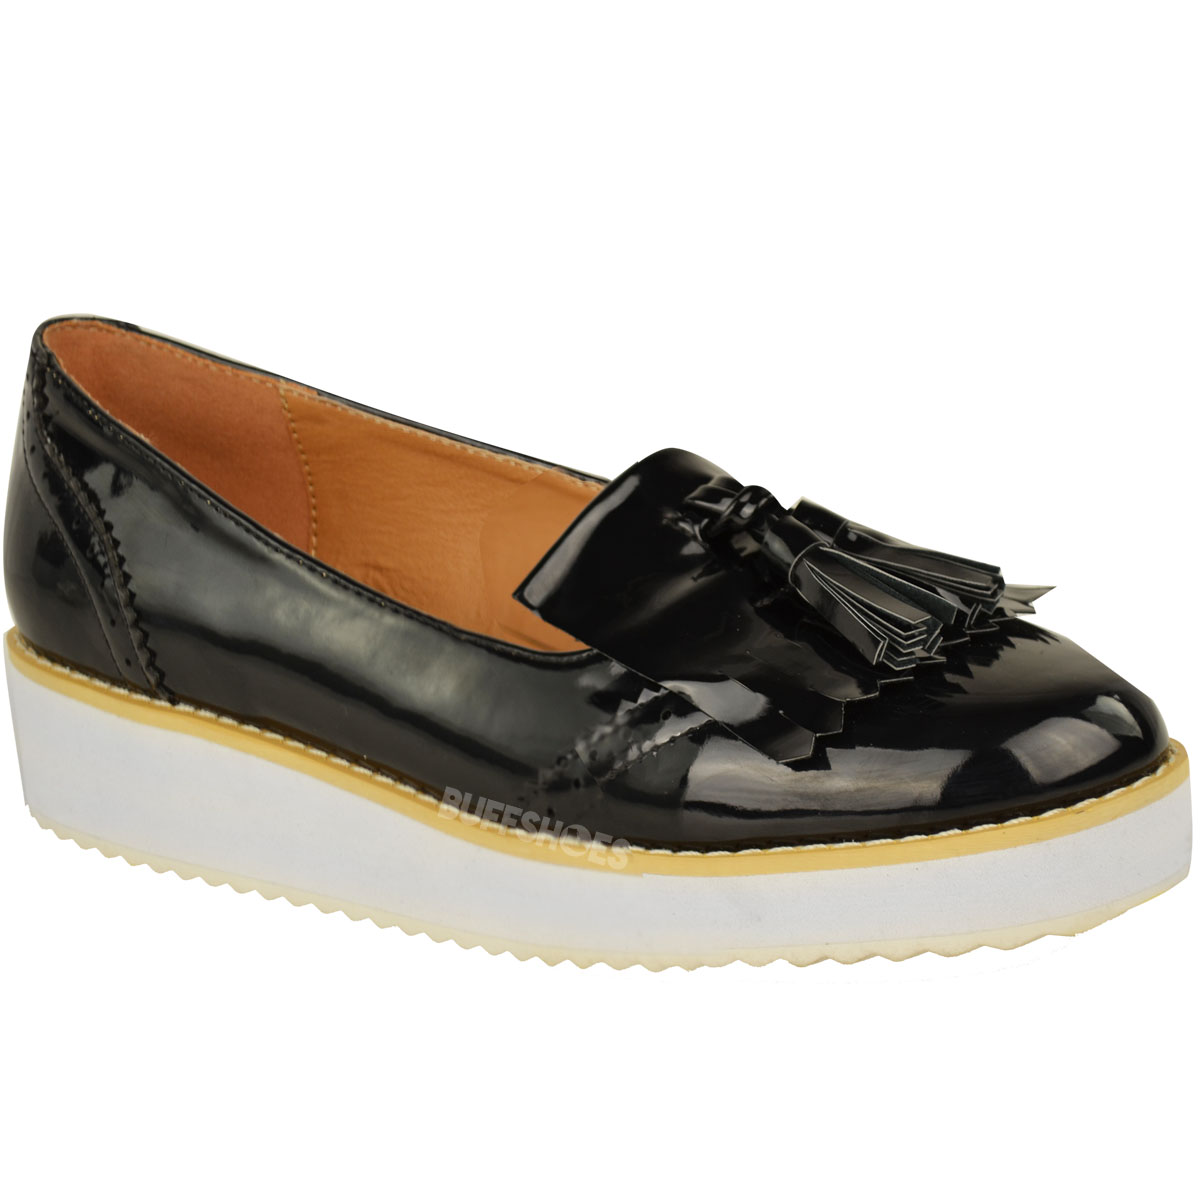 Ladies Shoes. Loafers. Women's Loafers (30) Inject a little polish into your shoe collection with our fantastic range of women's loafers. Go for a fringed or tasselled design in black or brown leather for a timeless look. Alternatively, give this classic Show more.